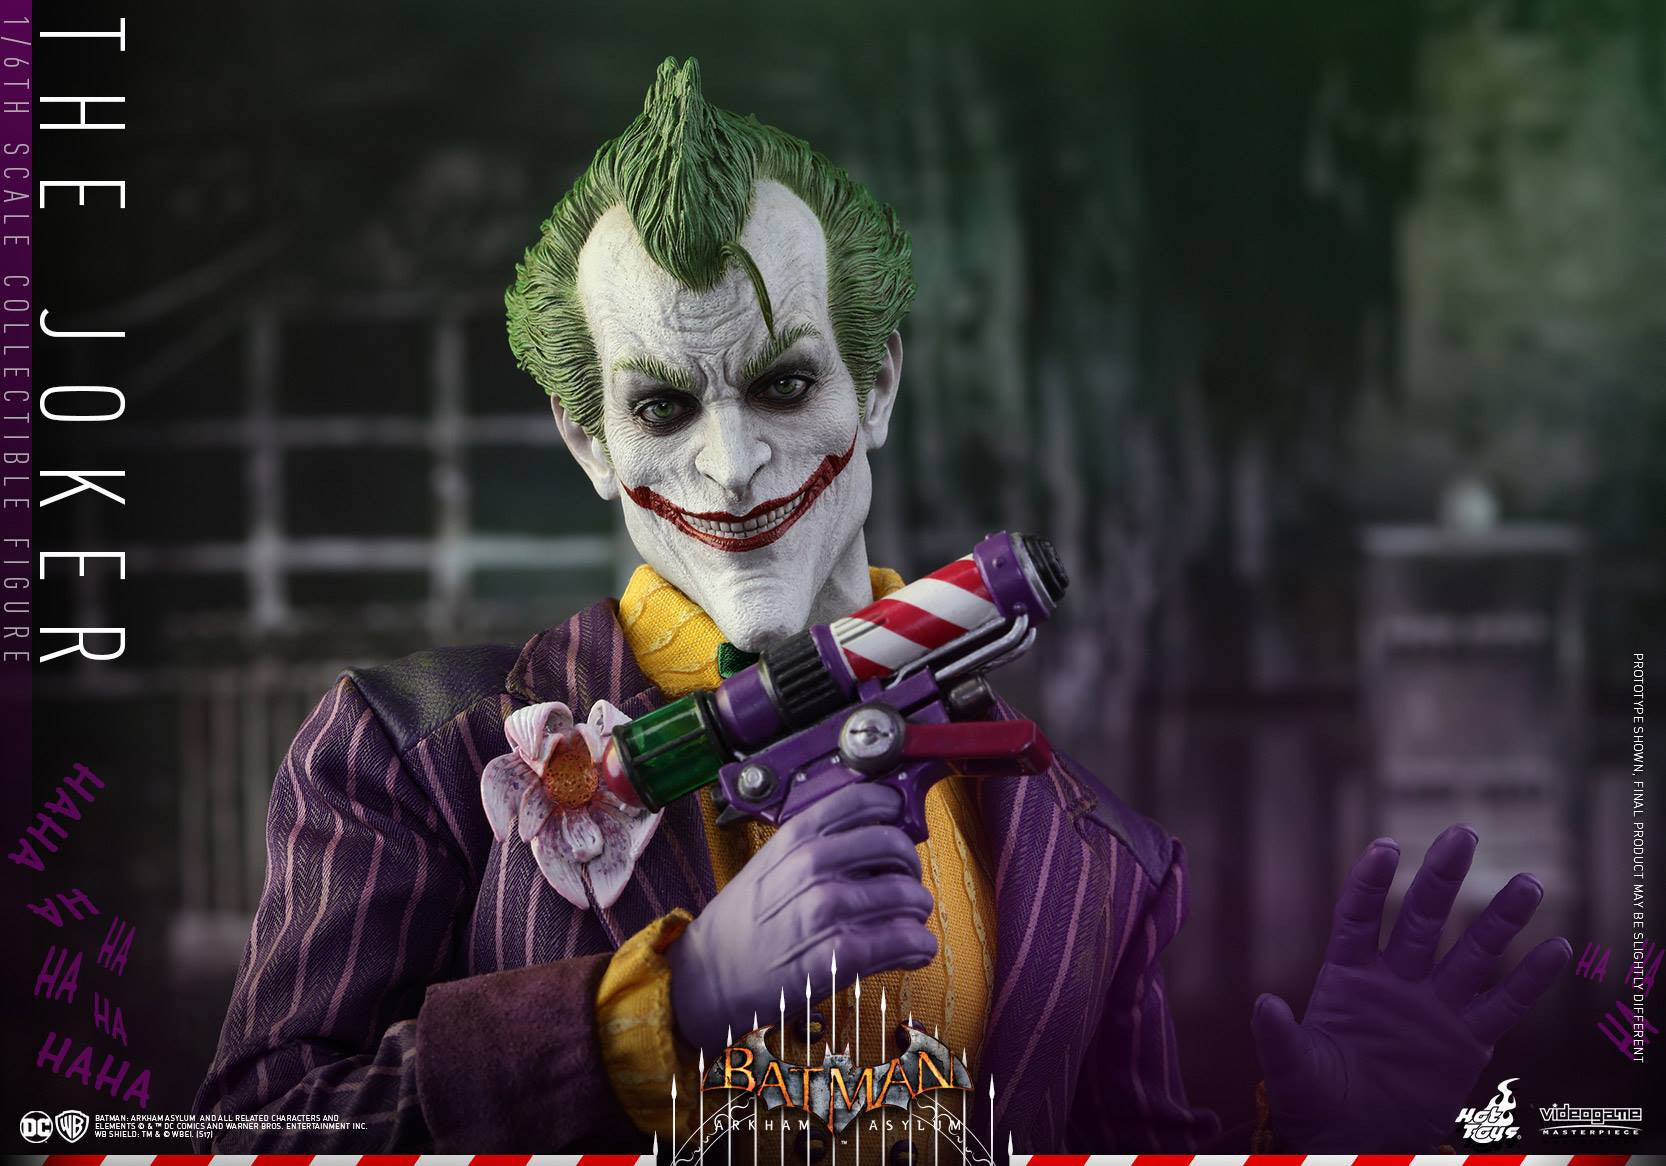 Hot Toys - VGM27 - Batman: Arkham Asylum - The Joker - Marvelous Toys - 3